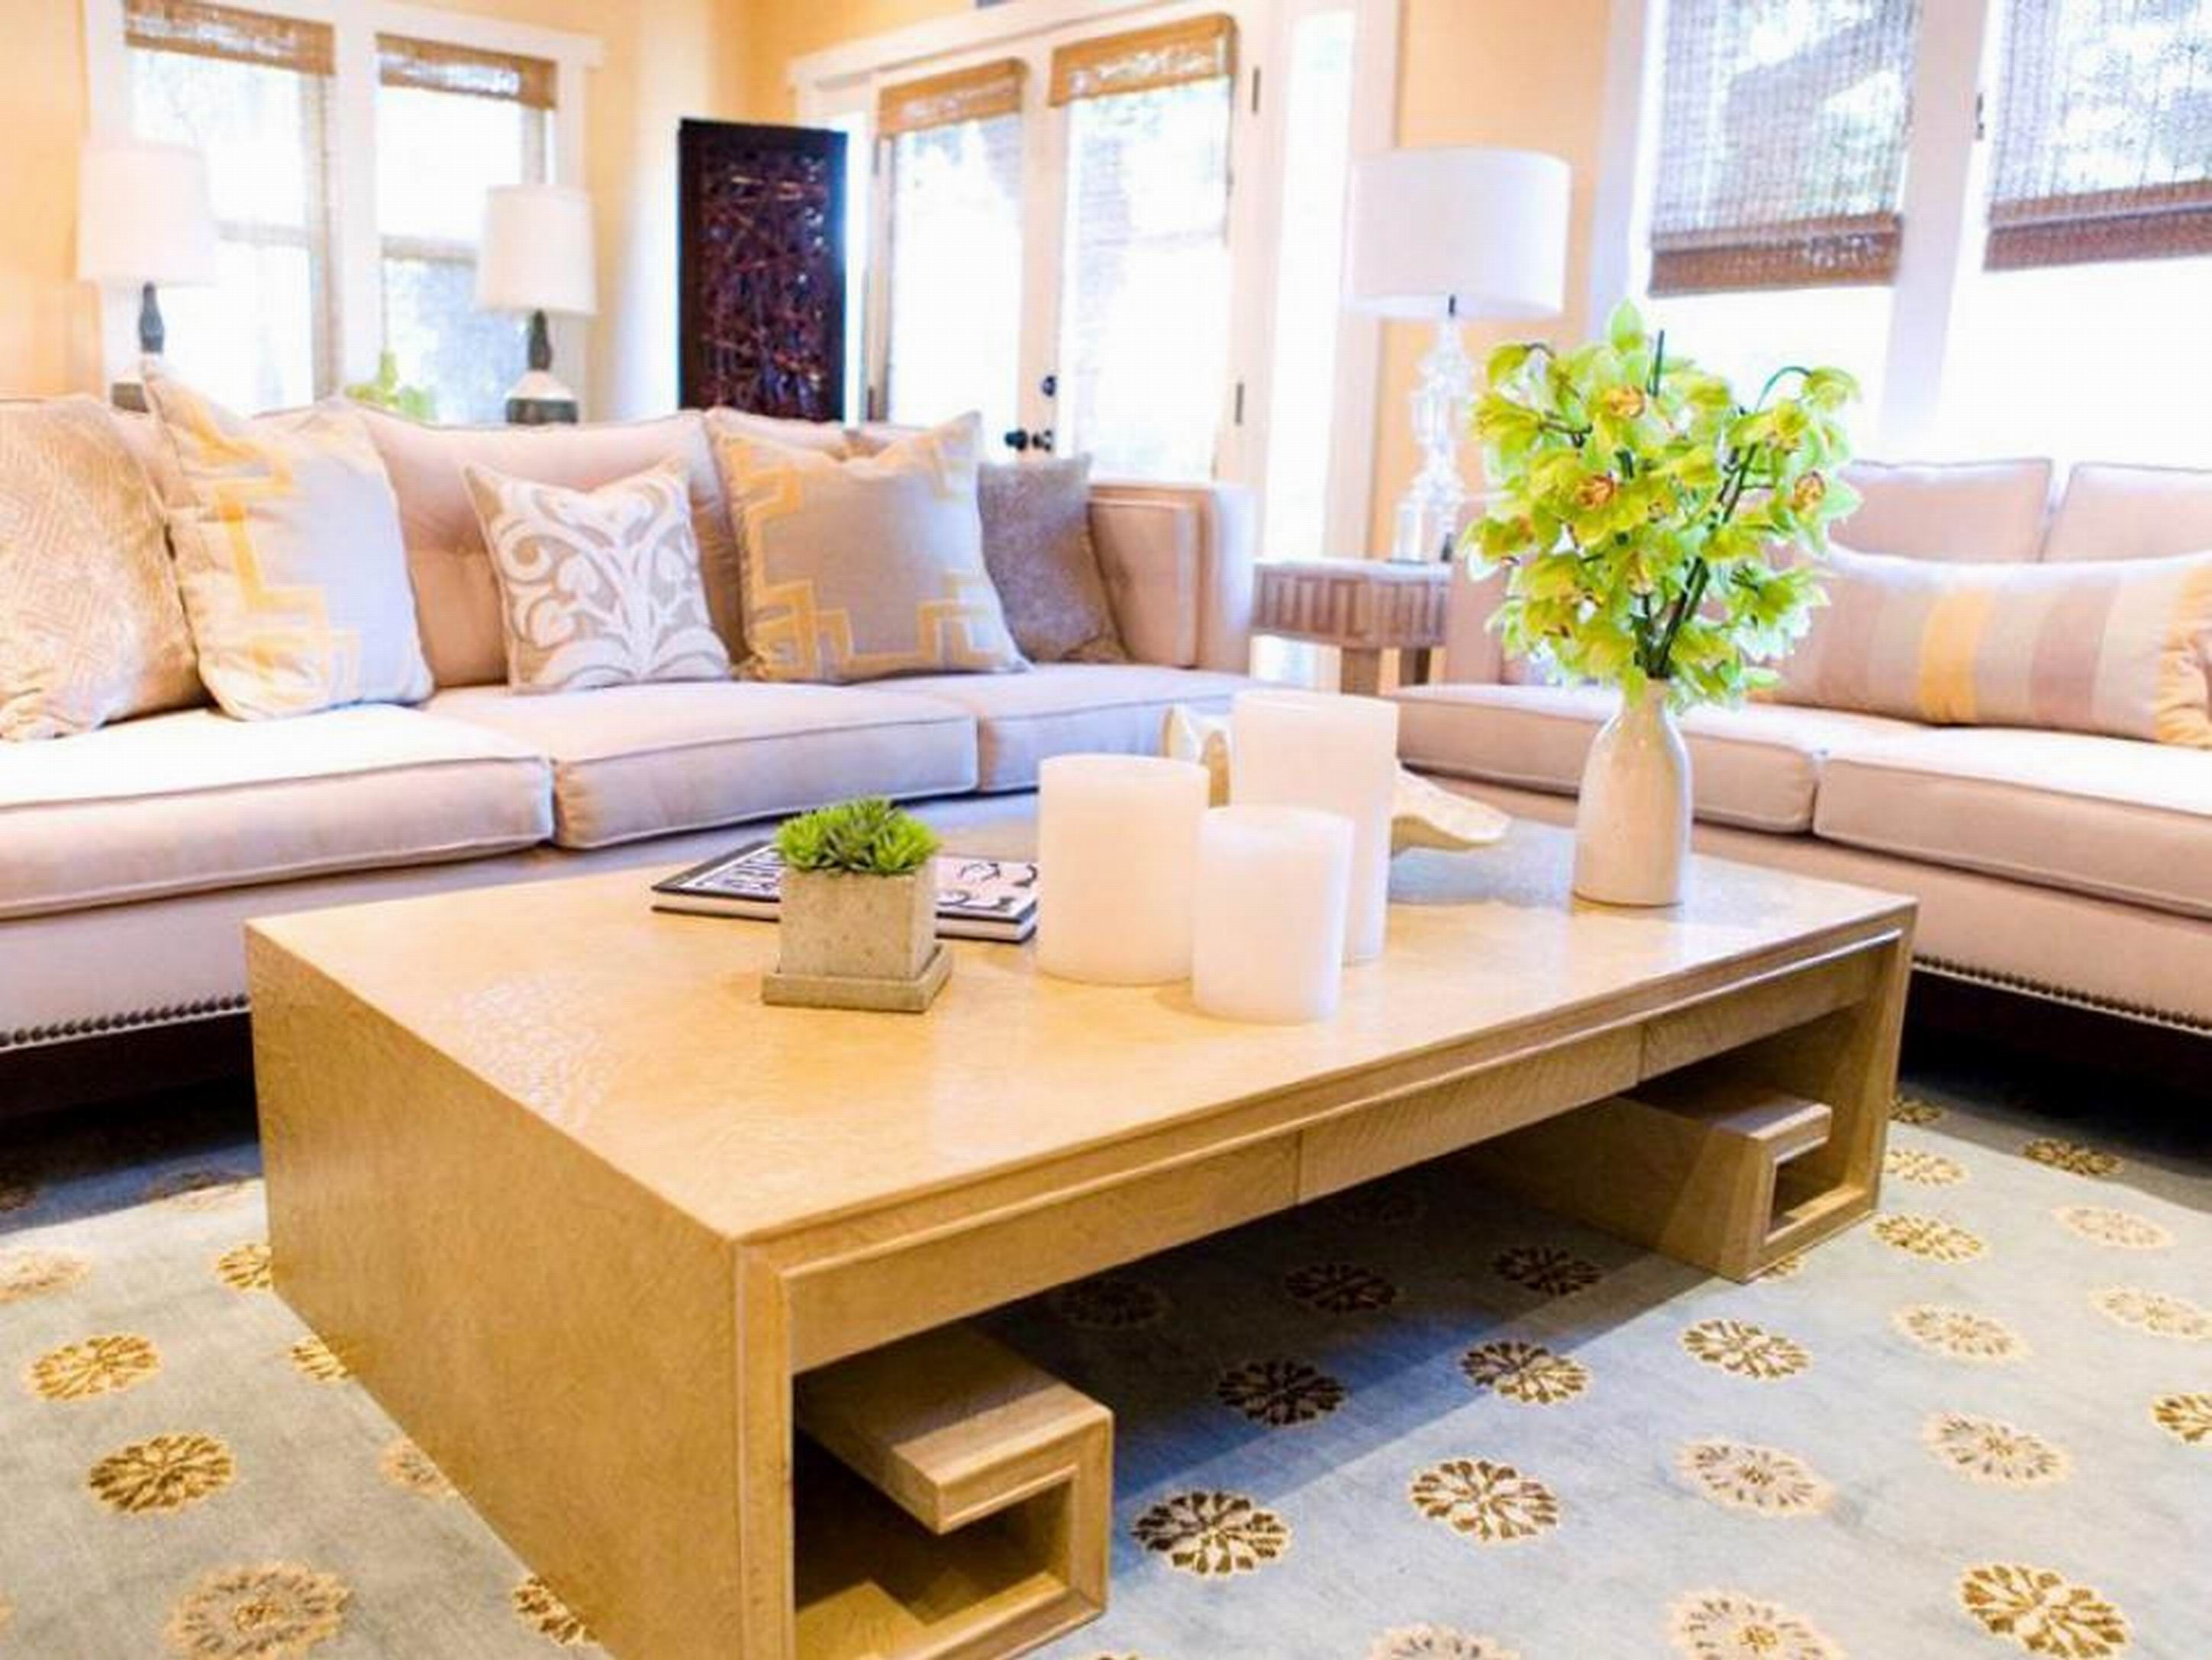 Interior Design Large Living Room Greek Key Coffee Table Lavender Sofa Living Room Decor Decor